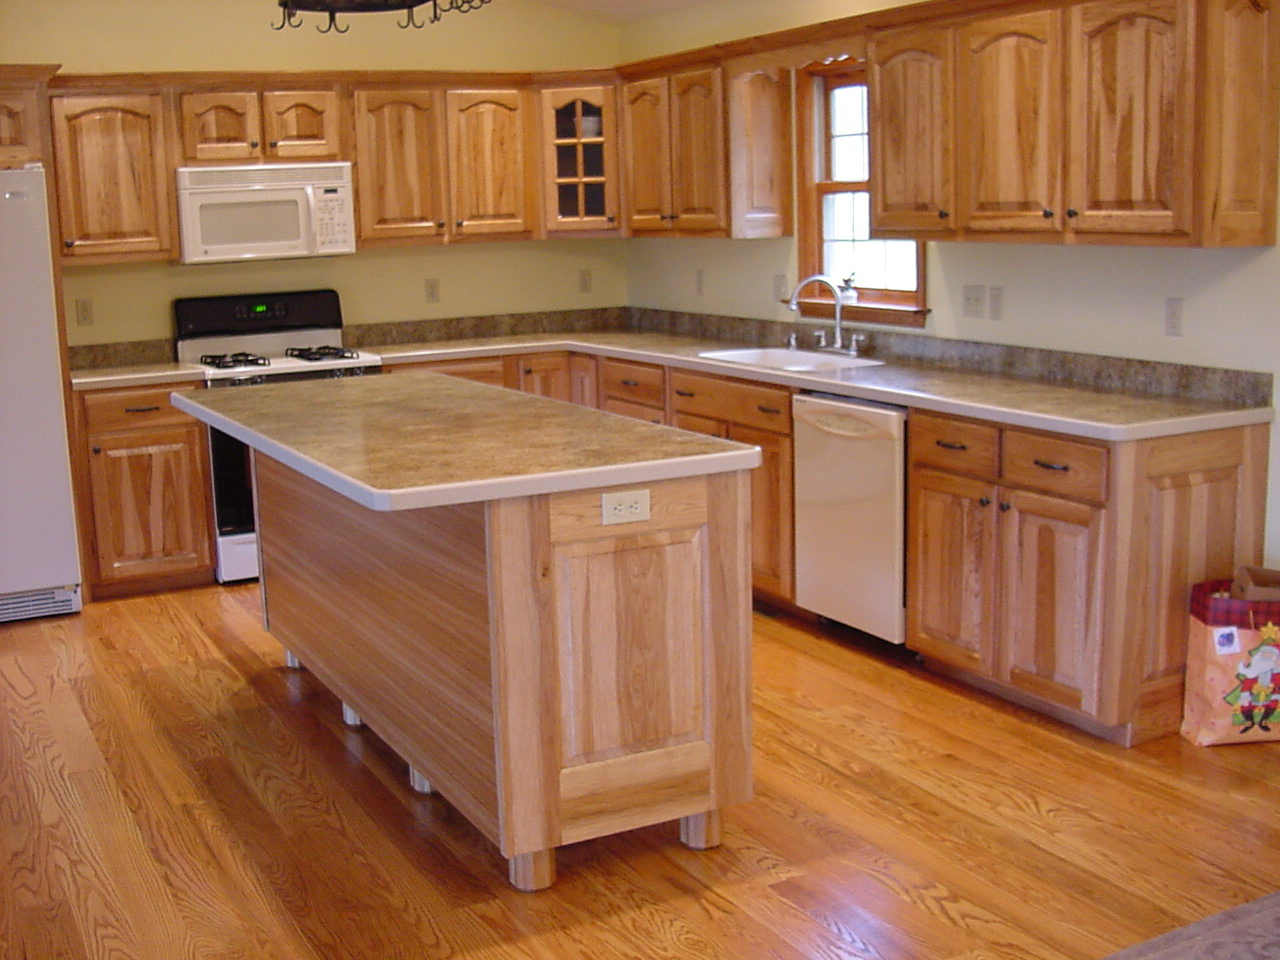 House construction in india kitchens countertop materials Types of countertops material